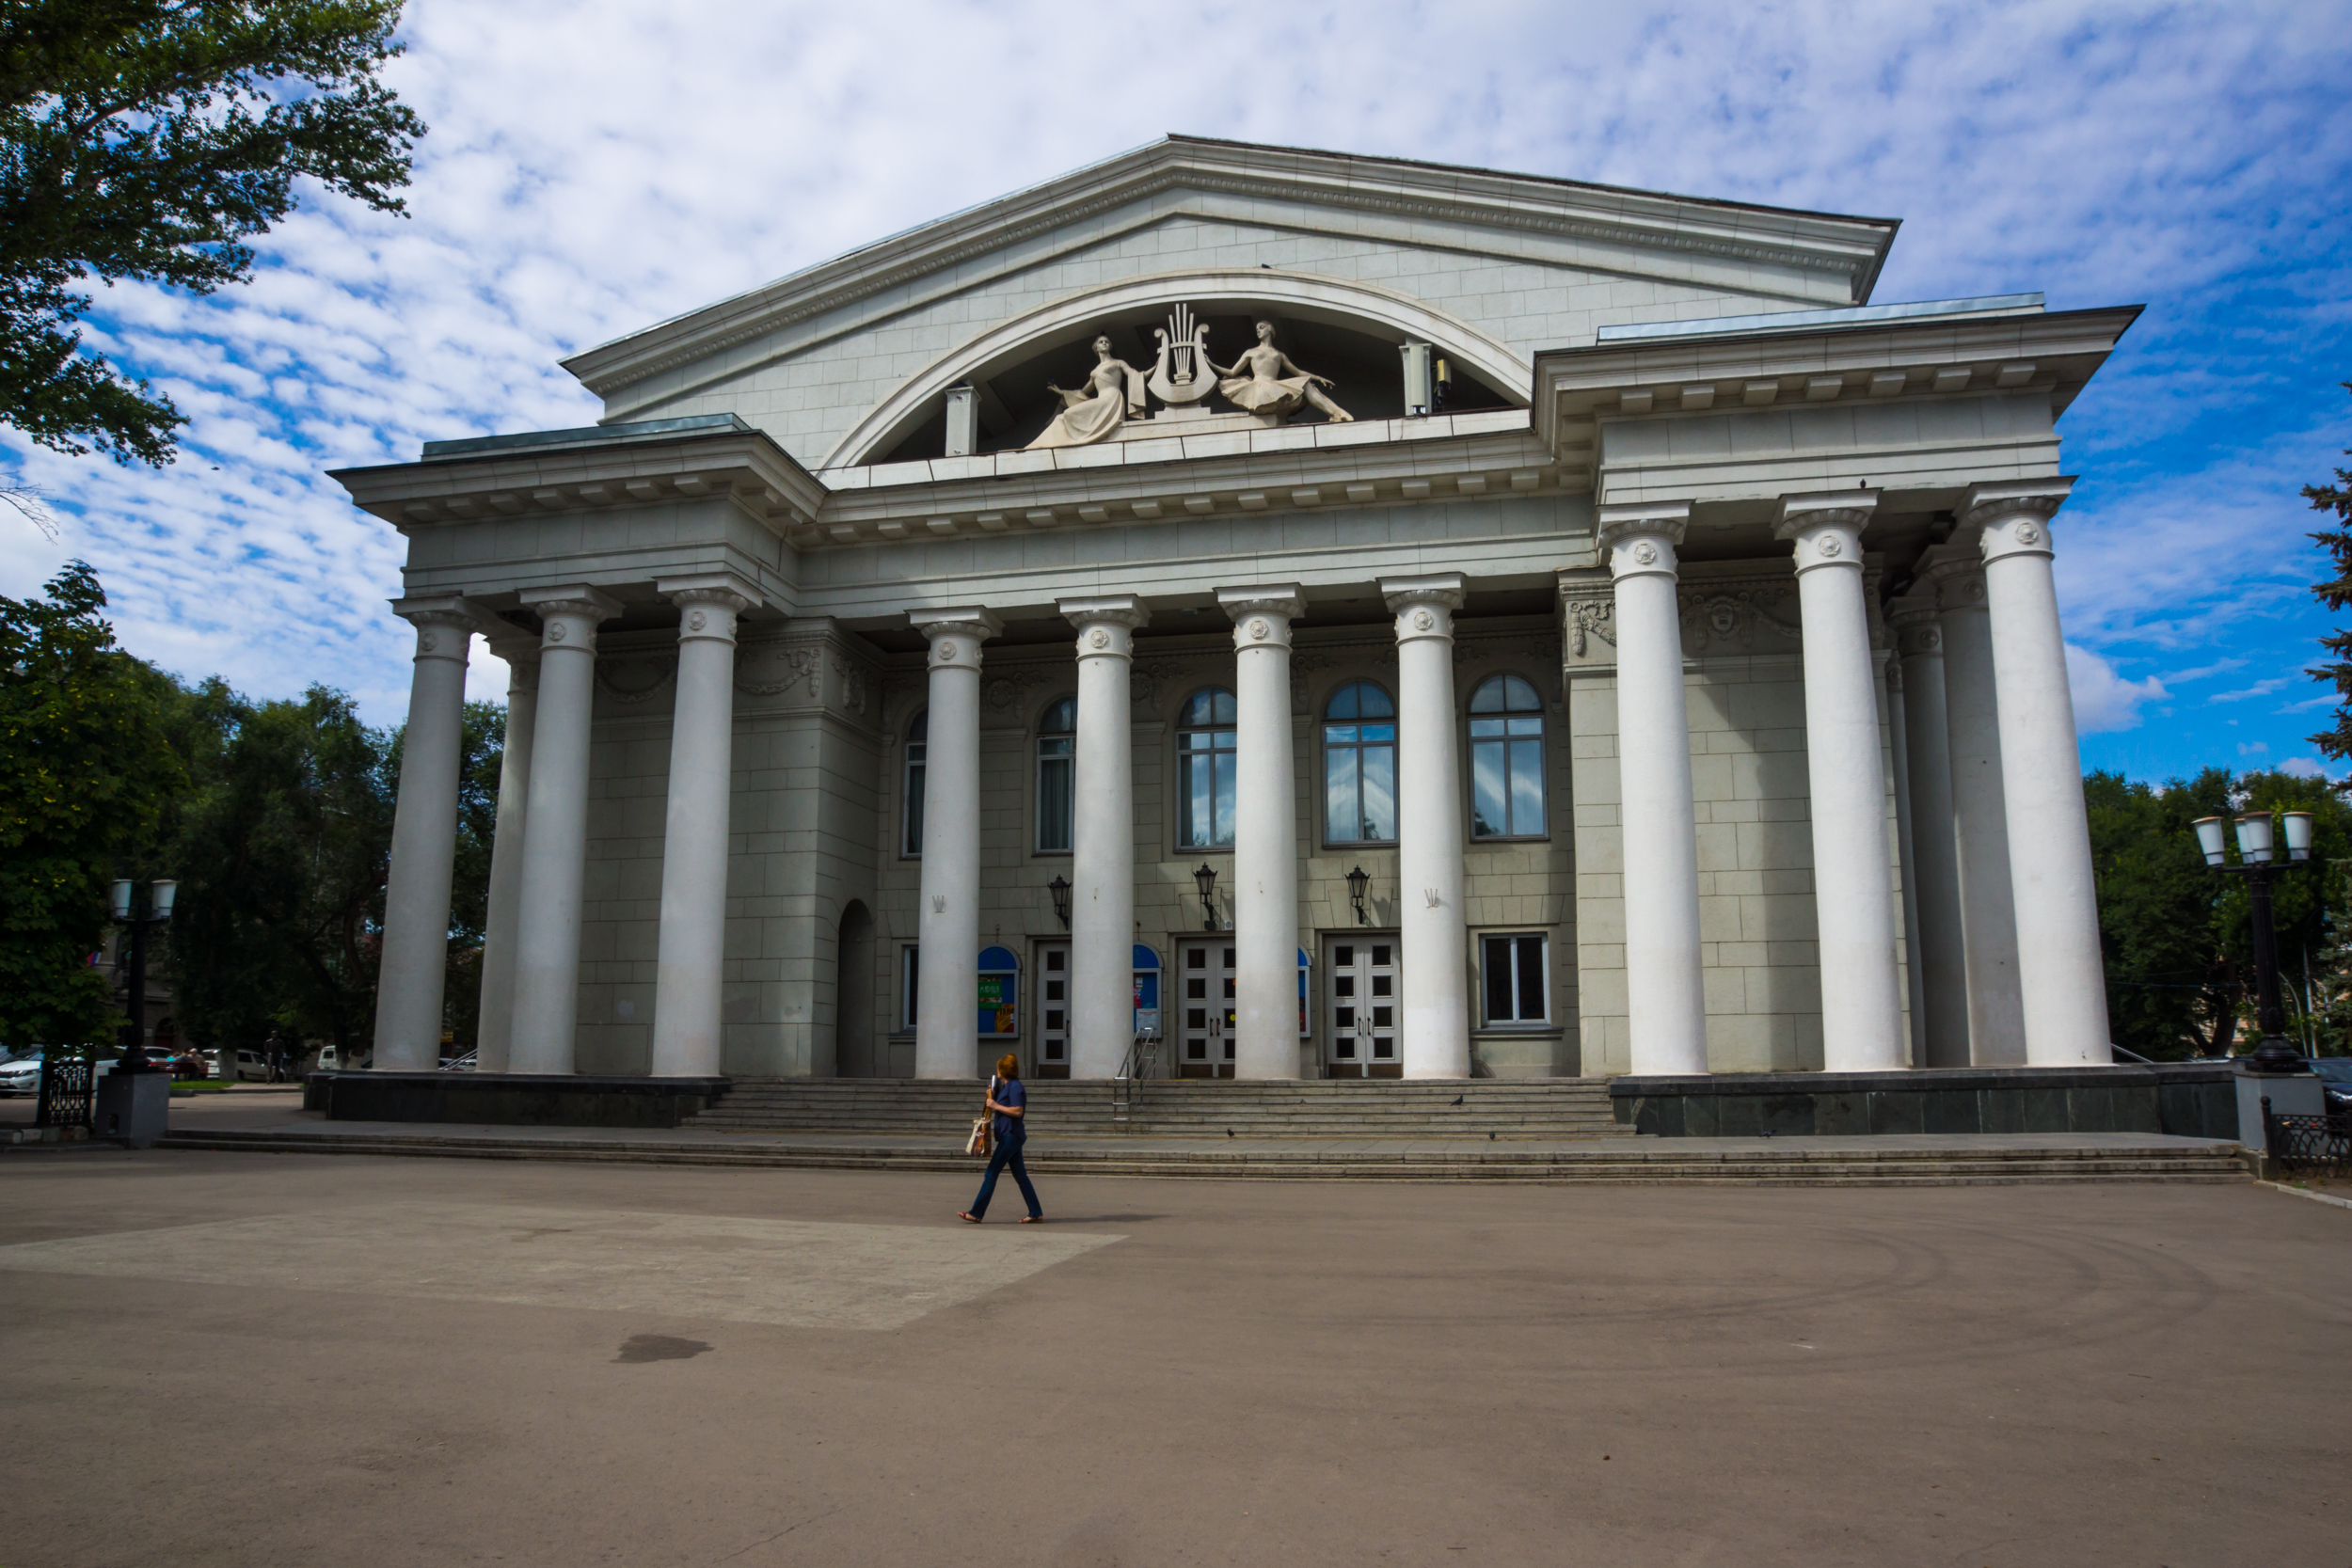 Opera and Ballet Theatre is one of the oldest theatres in Russia